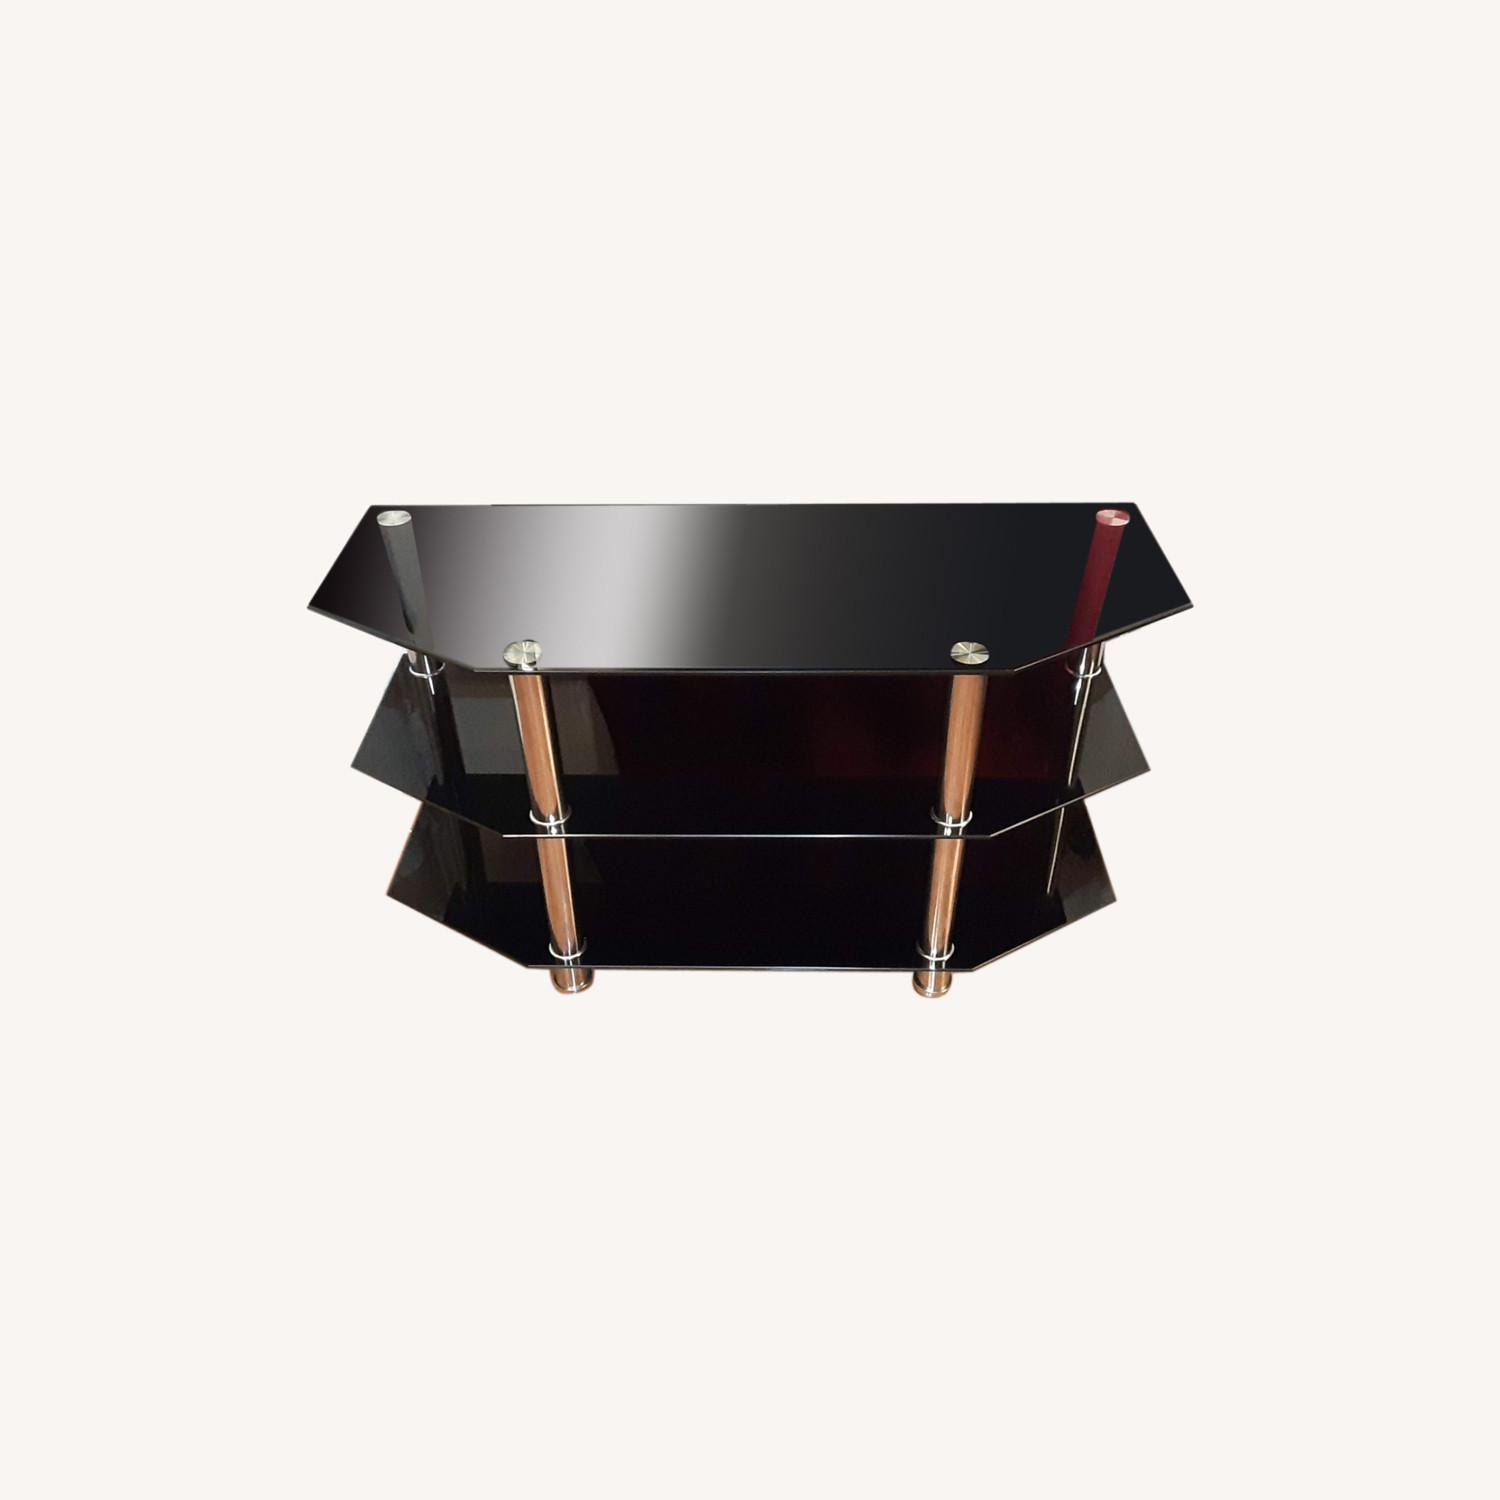 Ashley Furniture Glass TV Stand - image-0